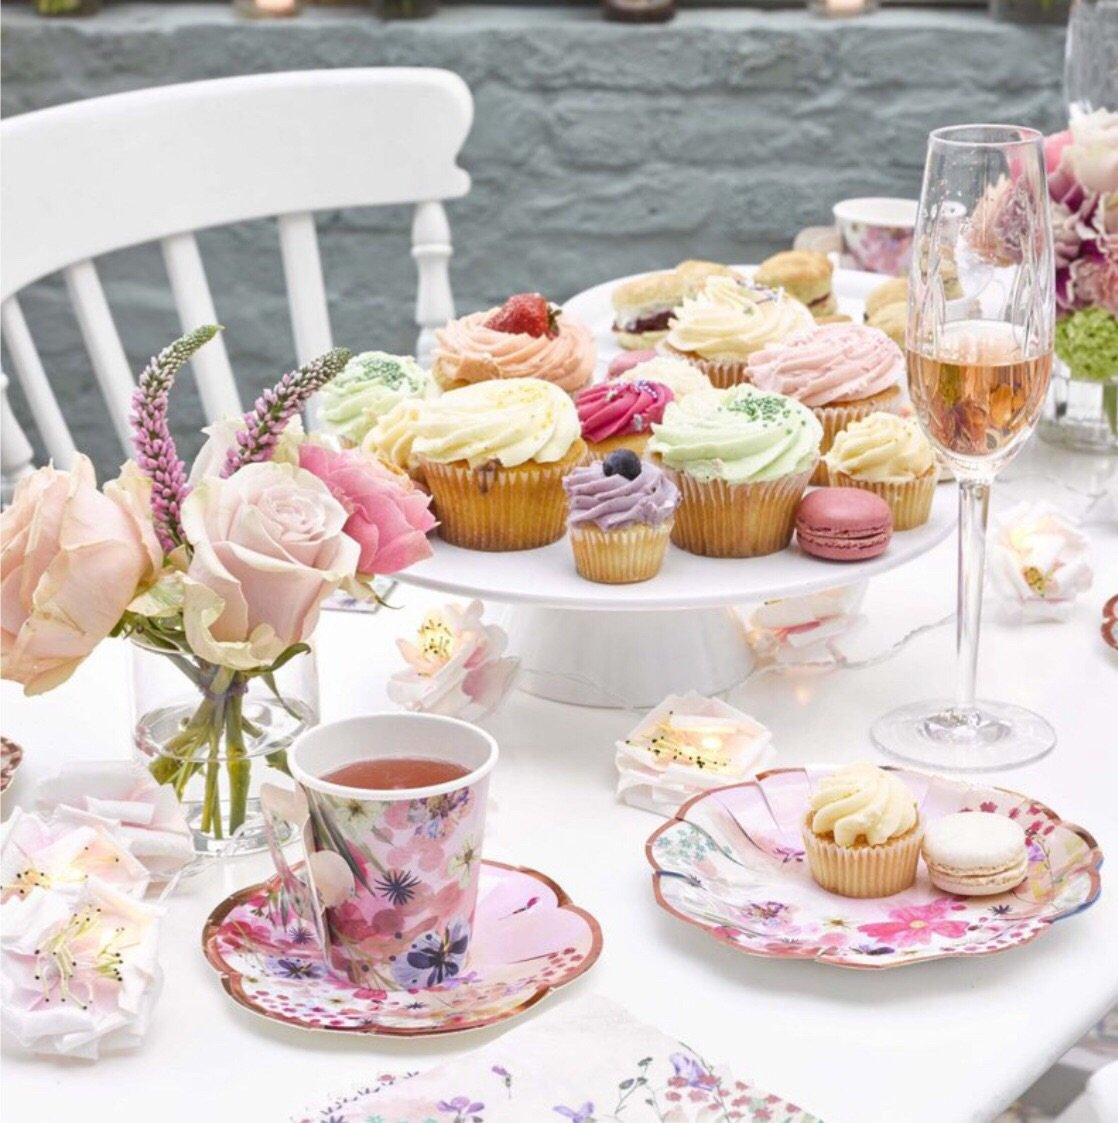 CUPS - BLOSSOM GIRLS TEACUP + SAUCER TALKING TABLES, CUPS, TALKING TABLES - Bon + Co. Party Studio